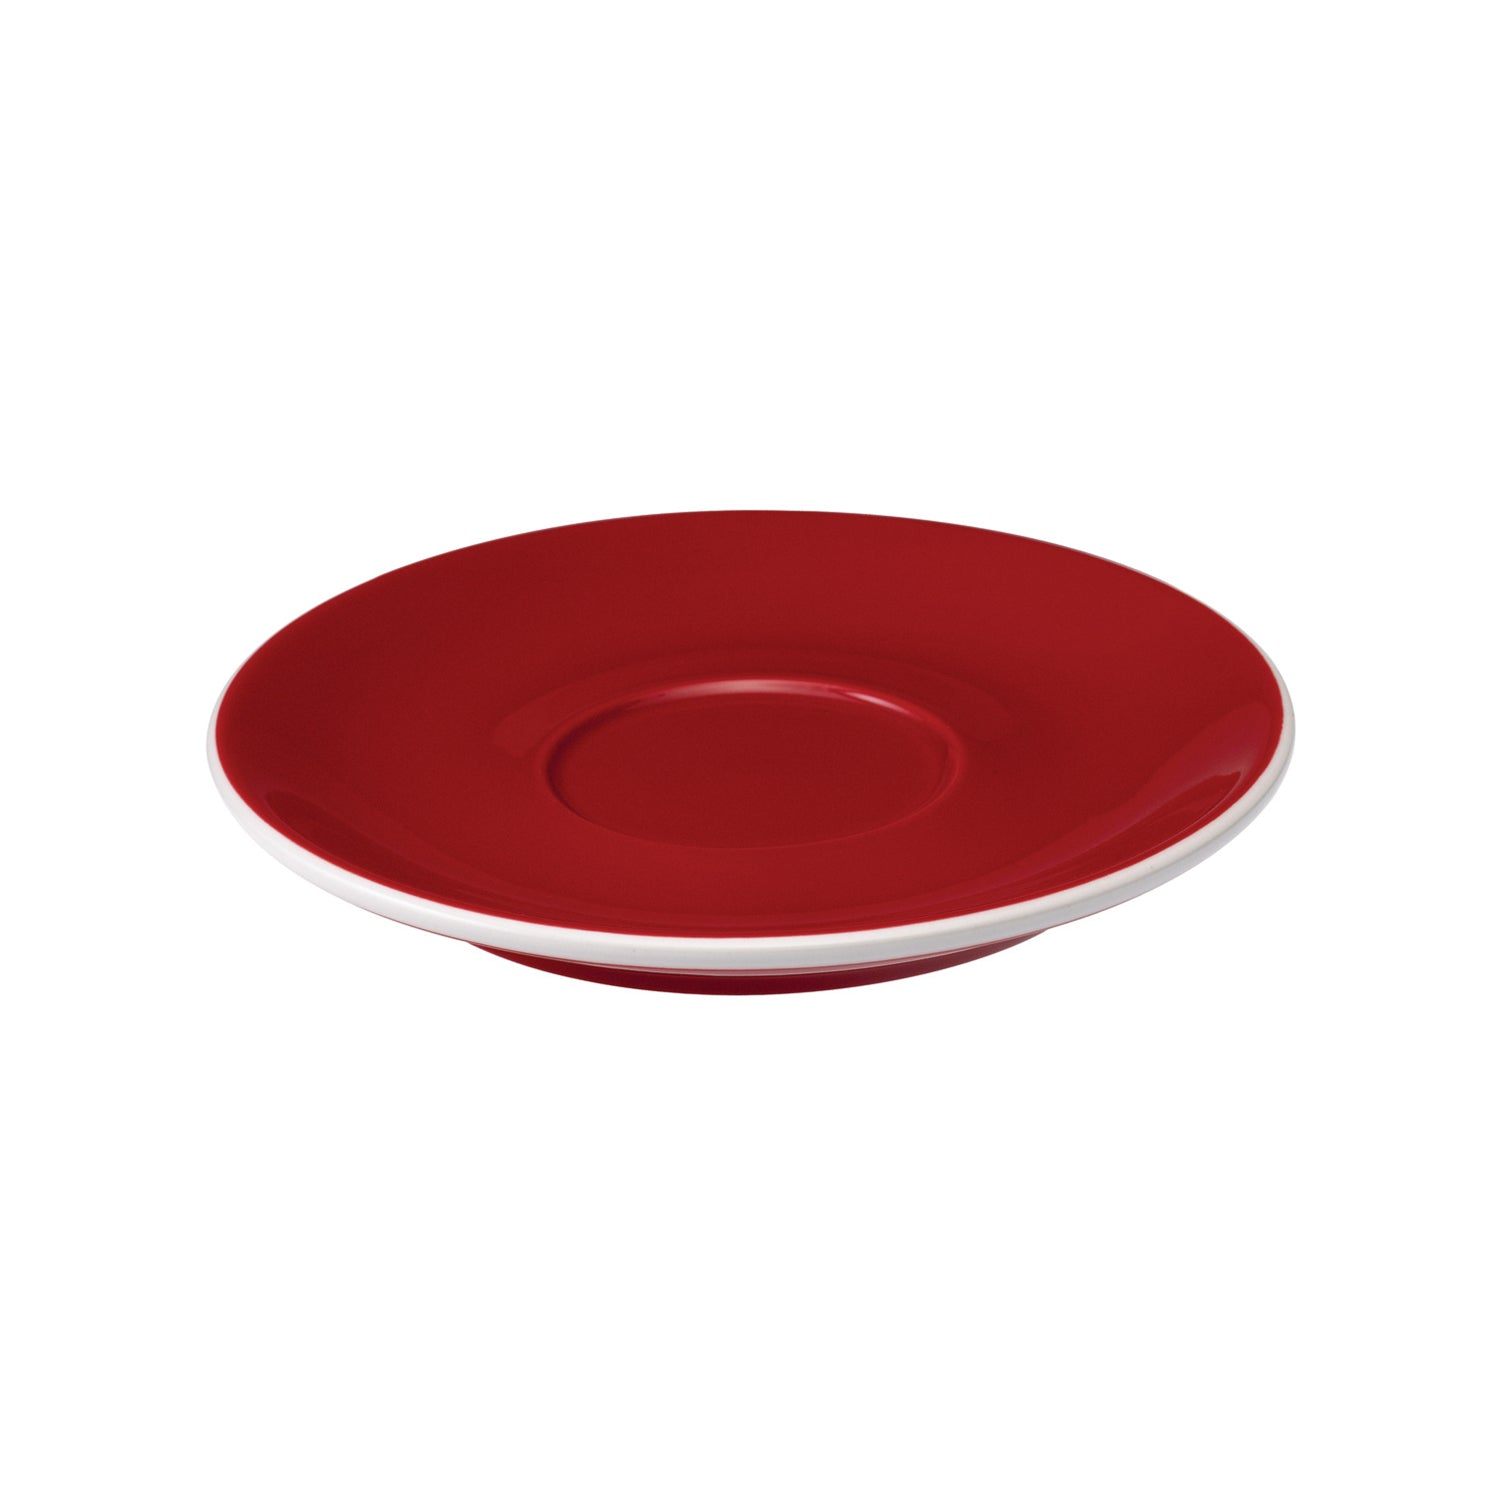 Loveramics Tulip Latte Saucer (Red) 15cm